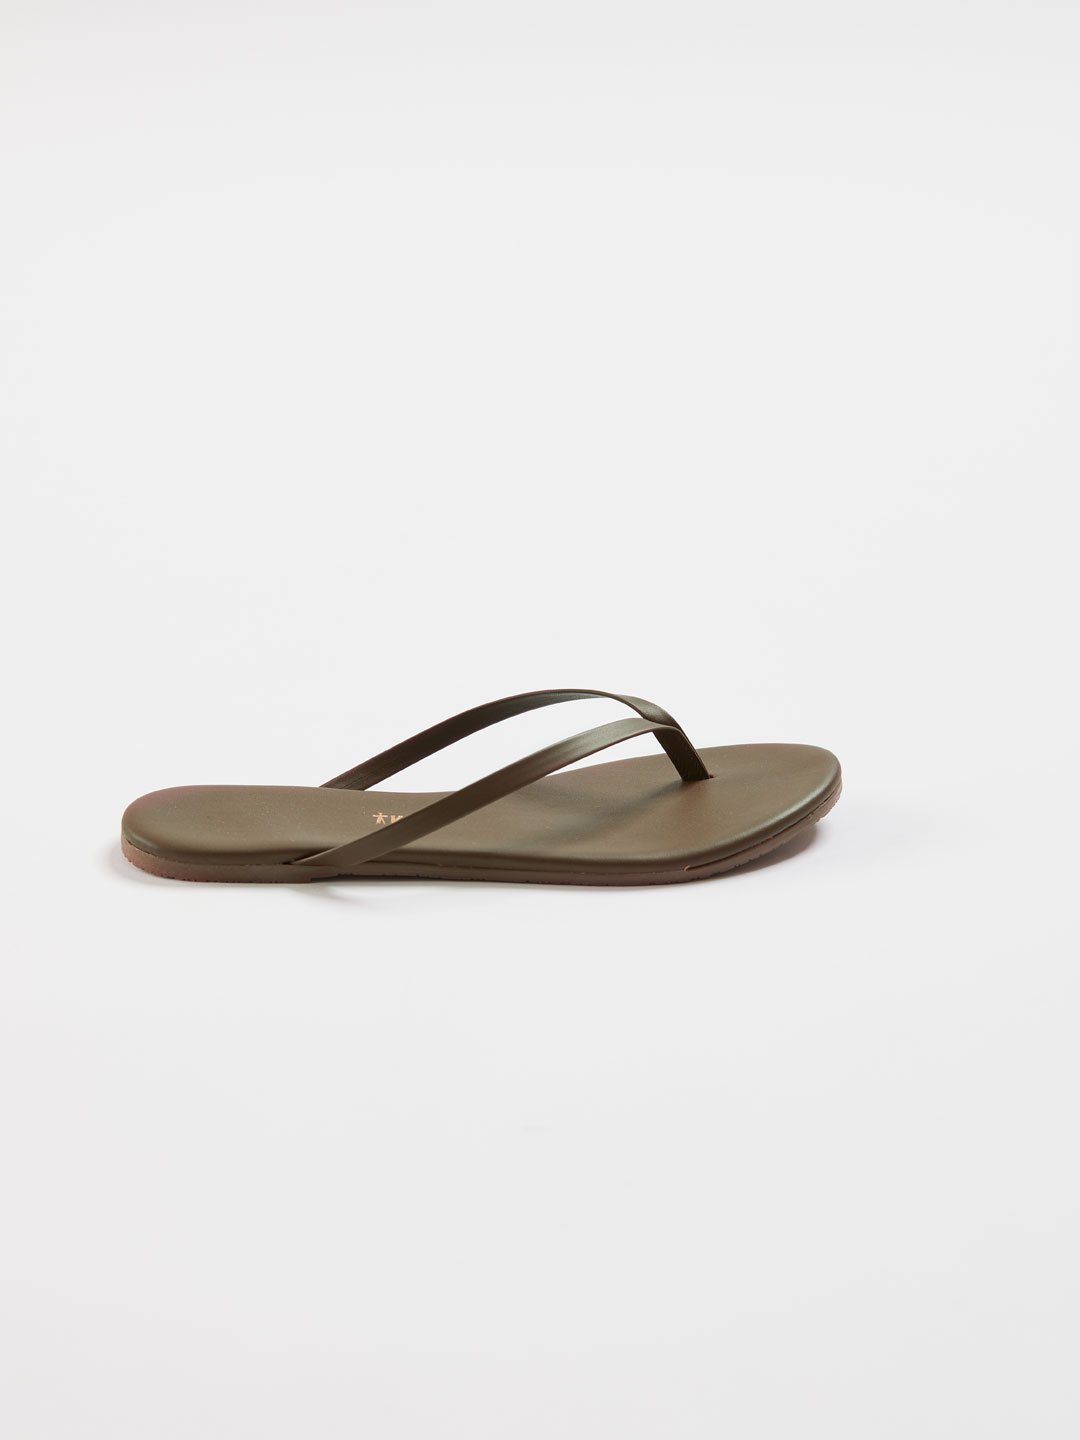 Most Loved Signature Flip Flop Sandals - Coffee/Brown